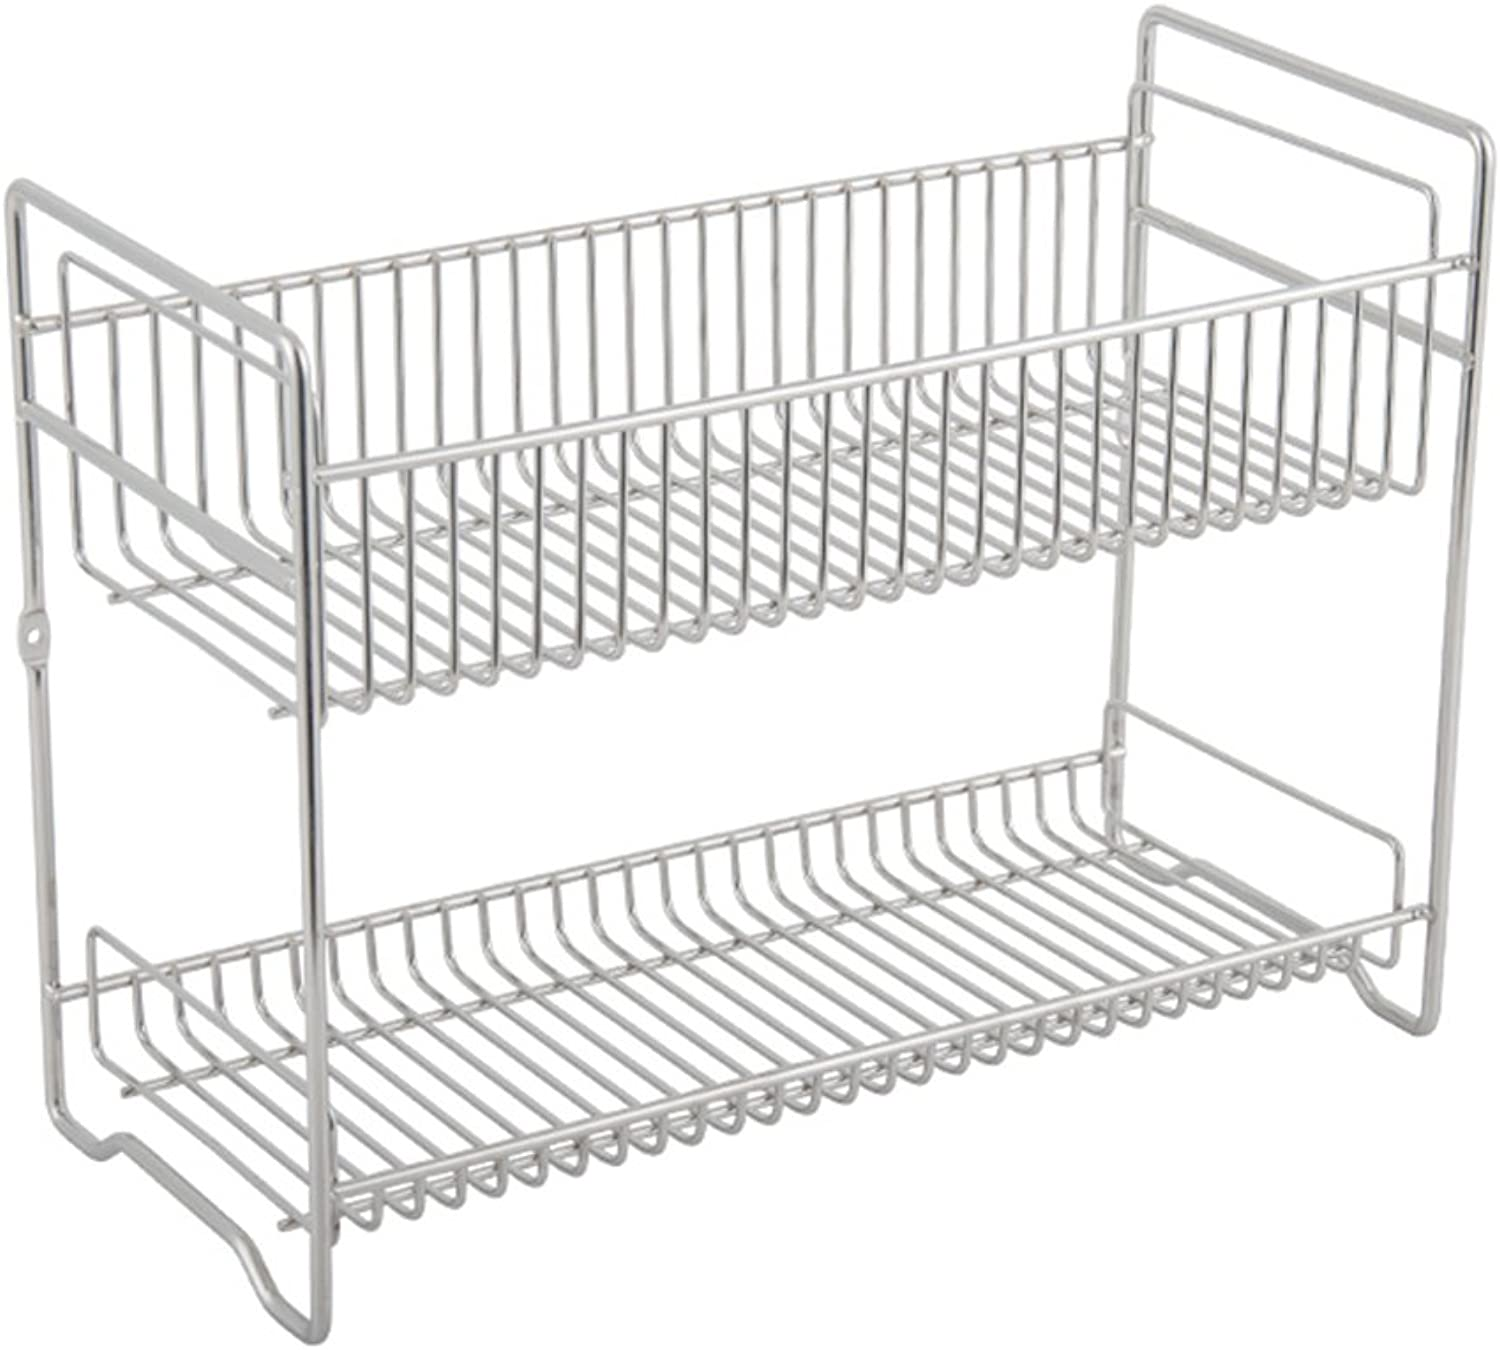 2-Tier Stainless Steel Rack Chopstick Holder Counter and Cabinet Shelf, 33 X 15 X 25cm